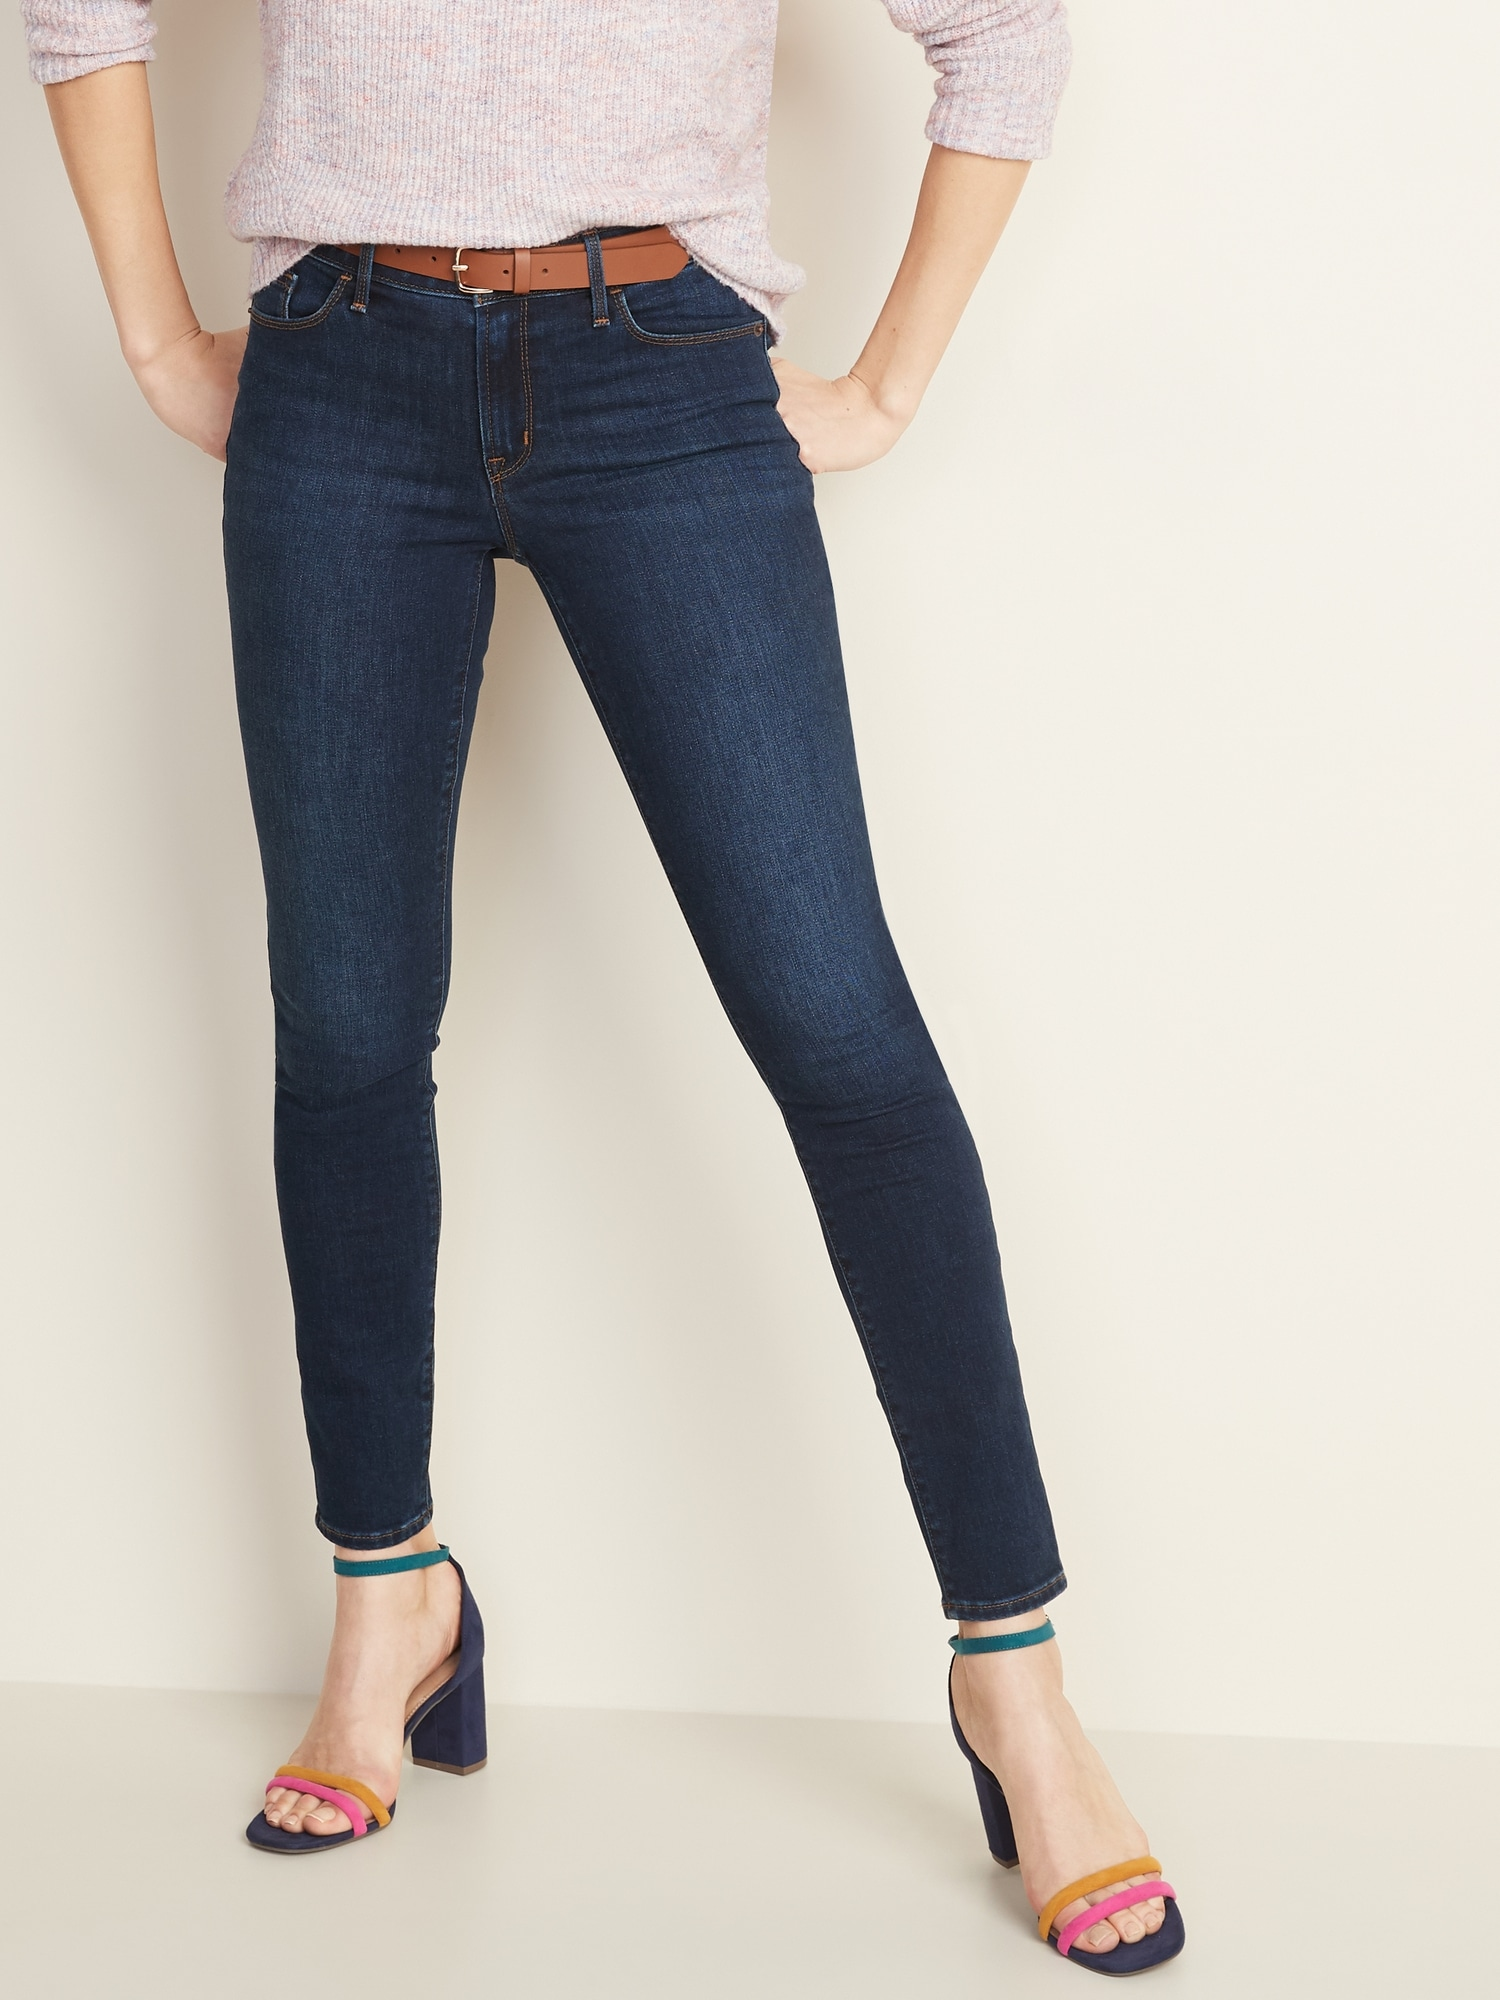 Mid Rise Dark Wash Pop Icon Skinny Jeans For Women by Old Navy